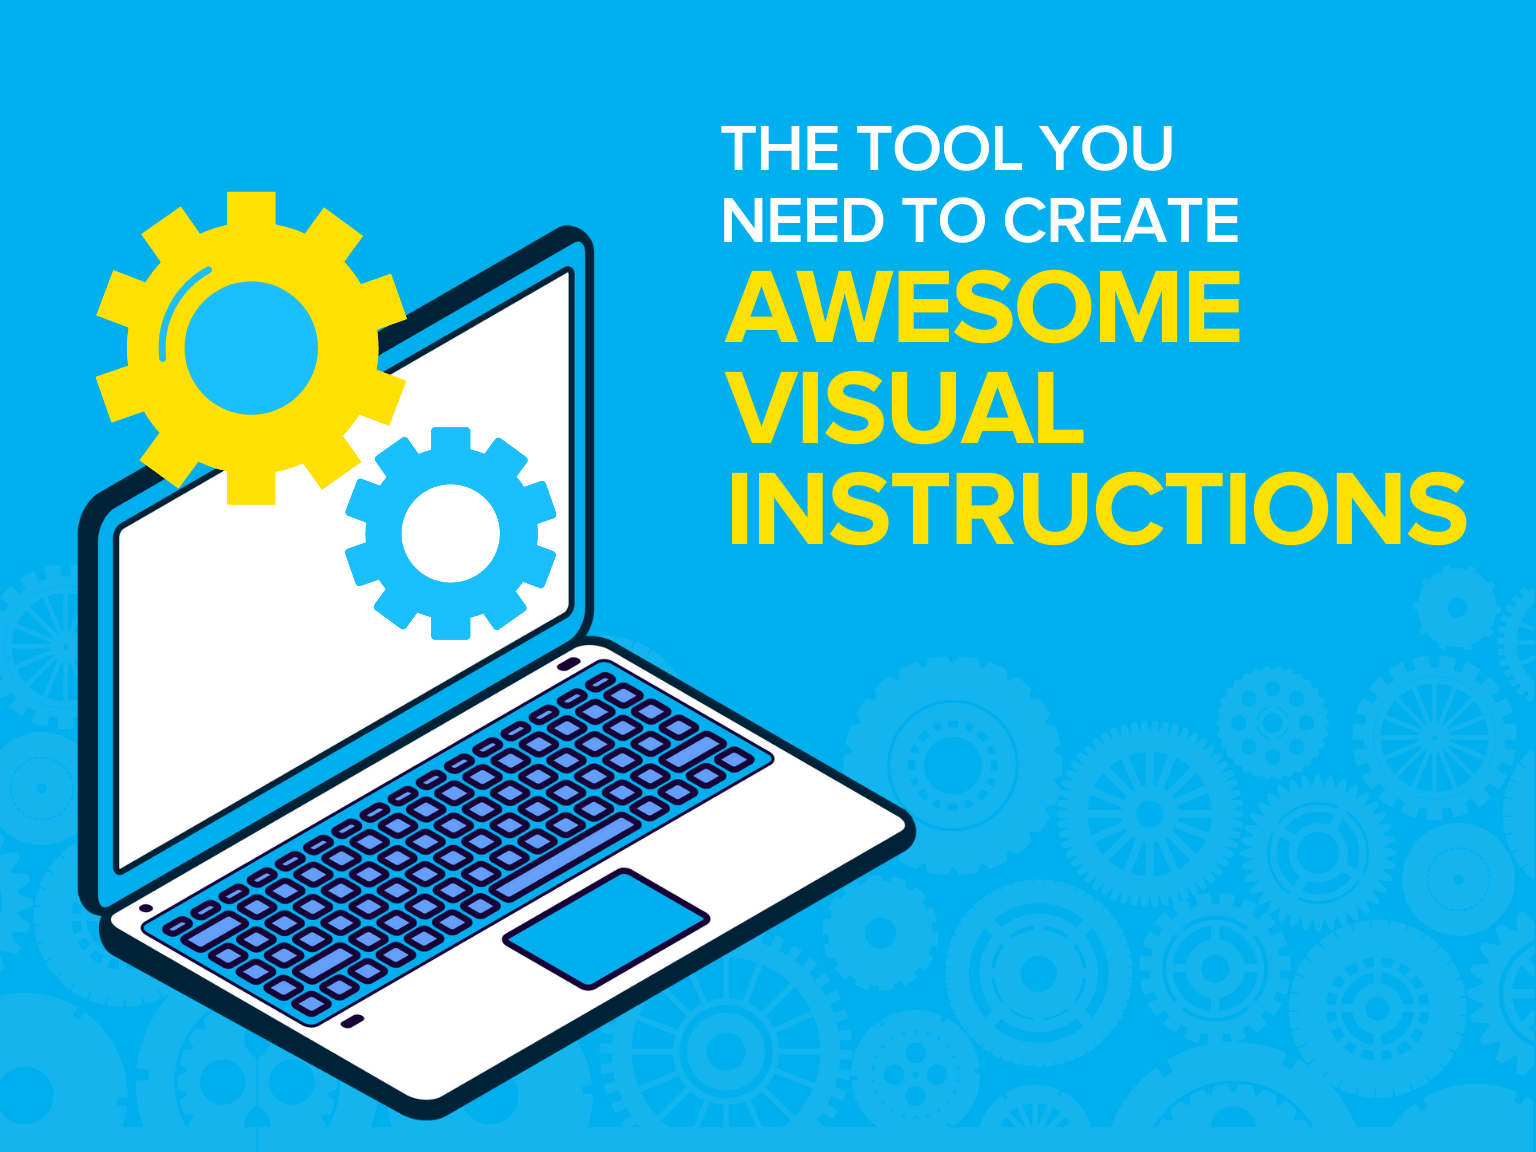 The Tool You Need to Create Awesome Visual Instructions